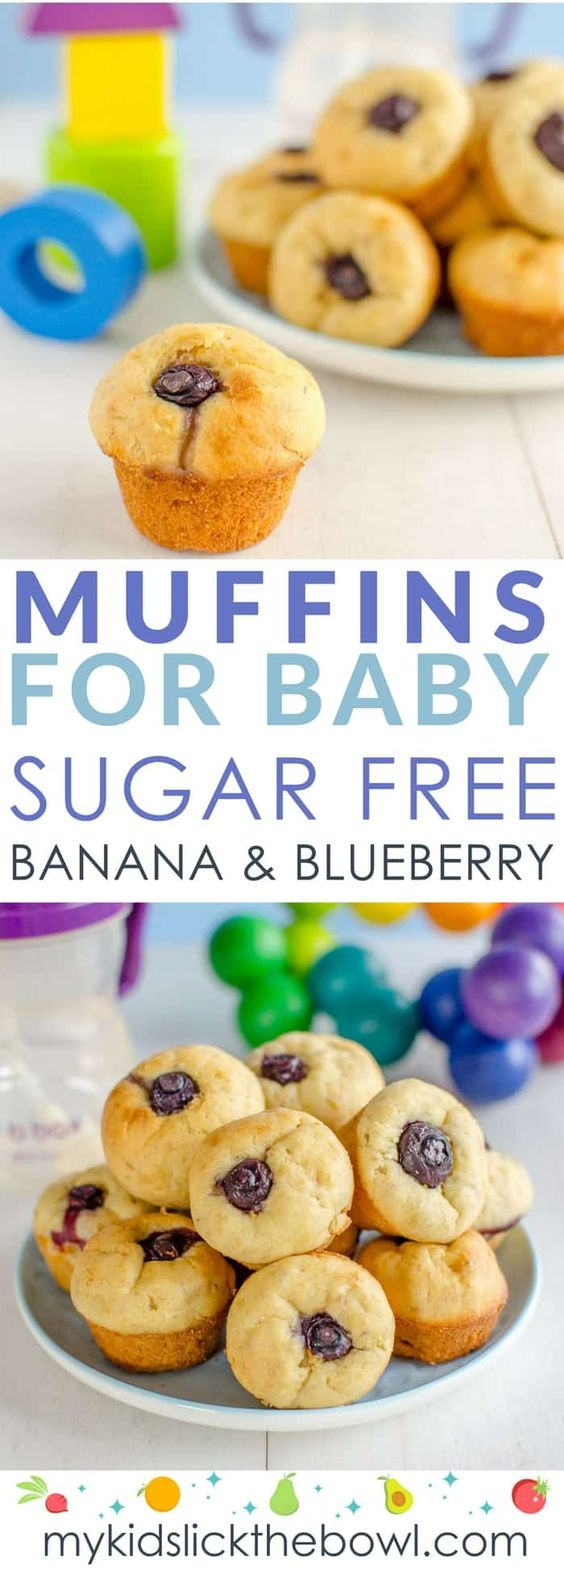 First Muffins For Baby - Banana and Blueberry